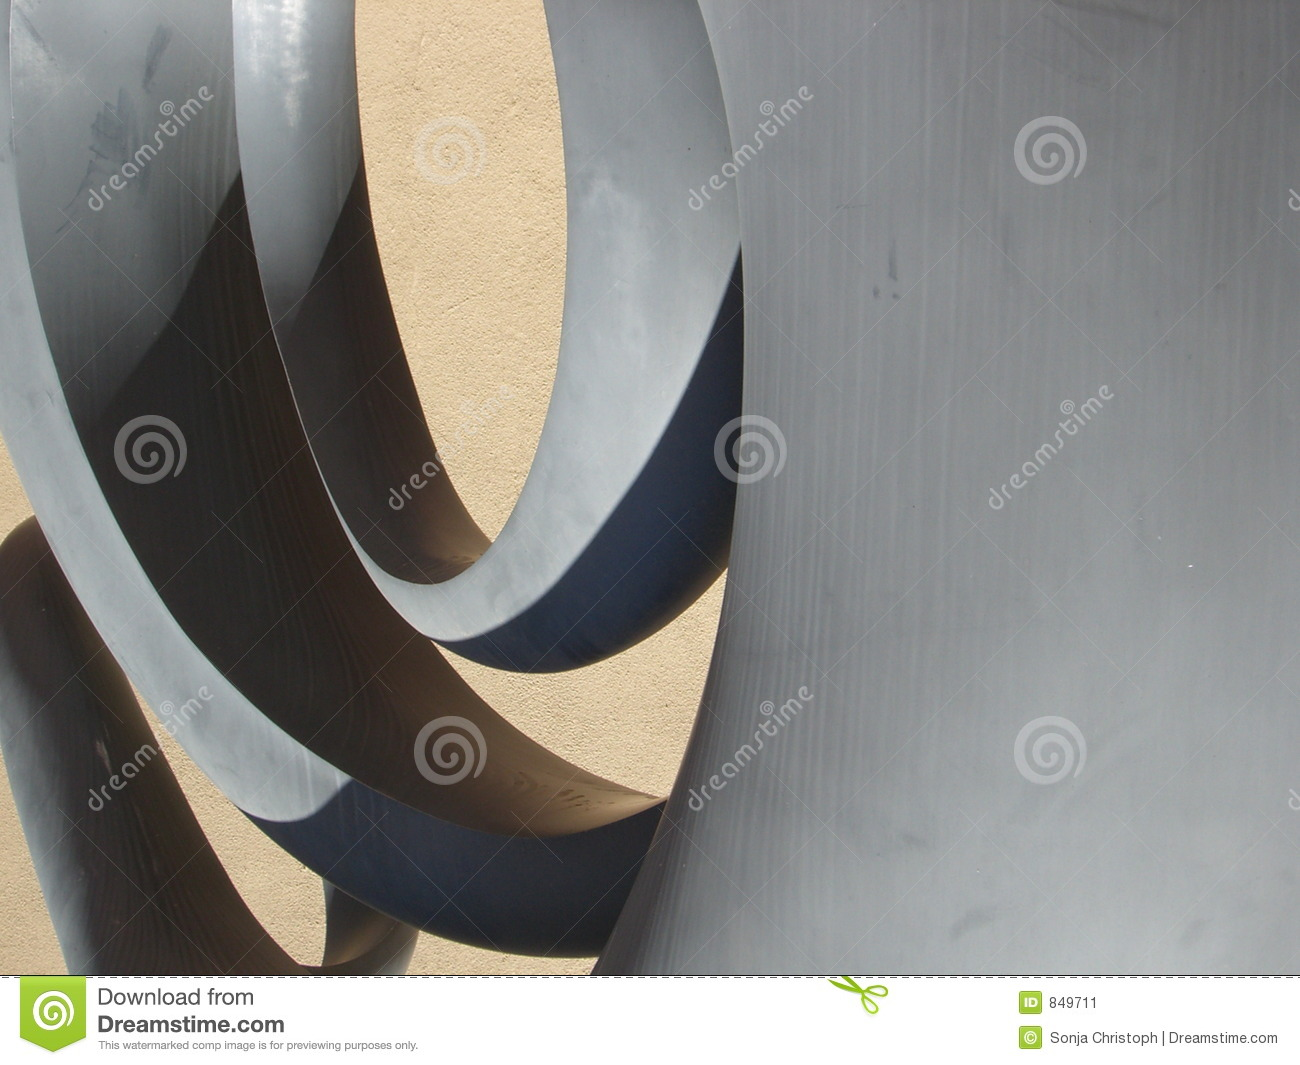 Shapes in sculpture II